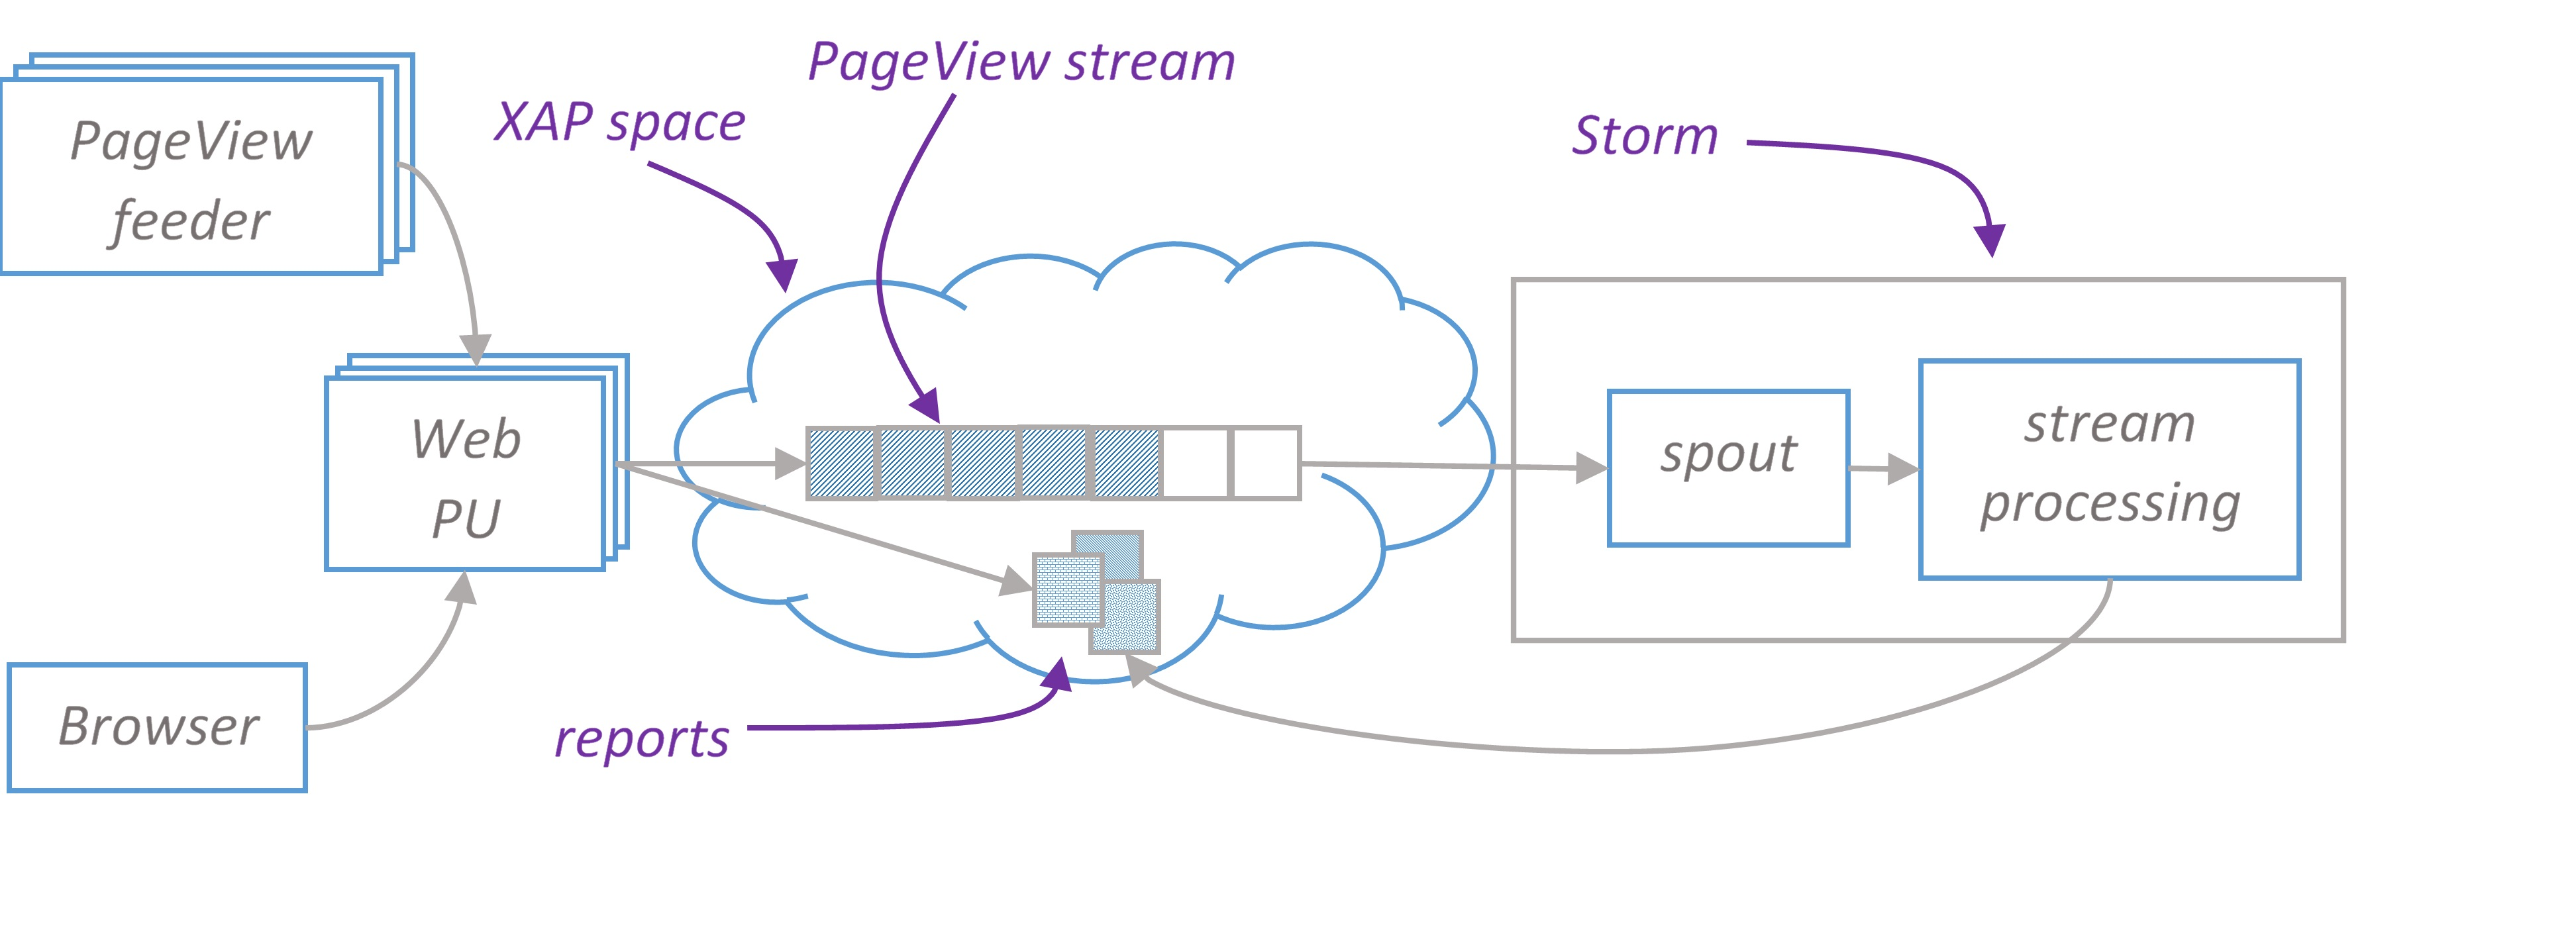 GigaSpaces and Storm integration - Shady Minds